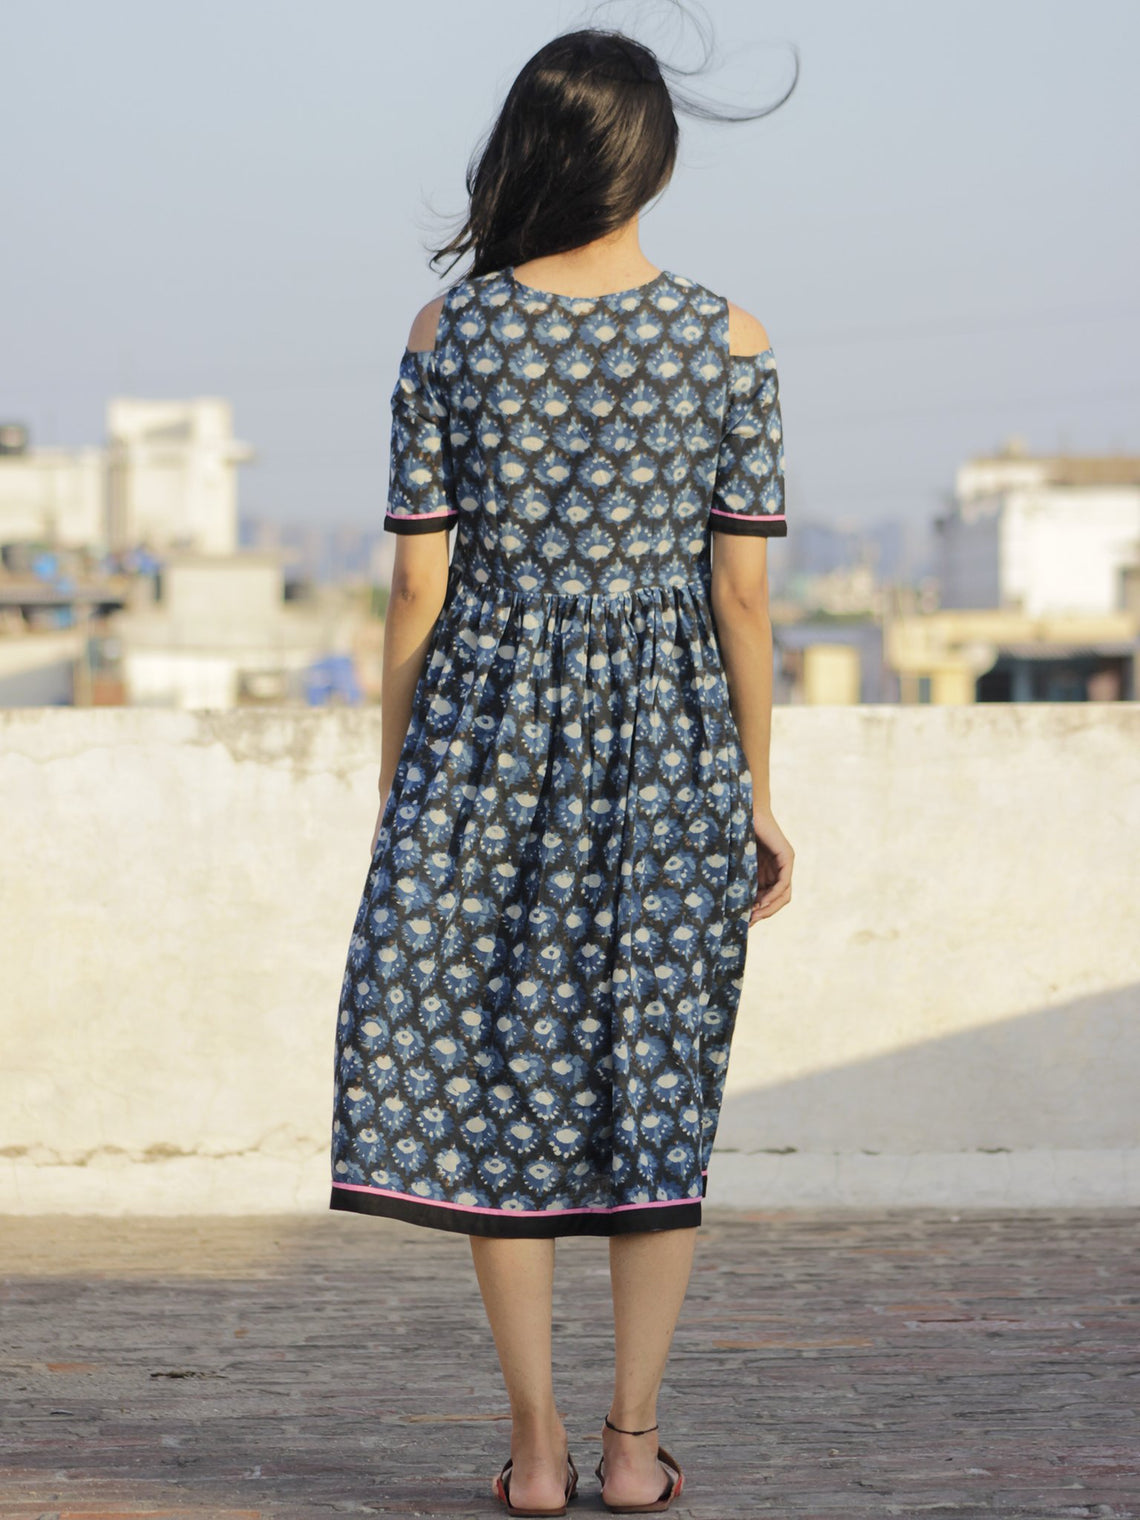 Indigo Black Ivory Pink Hand Block Printed Dress With Cold Shoulders And Tassels - D69F908